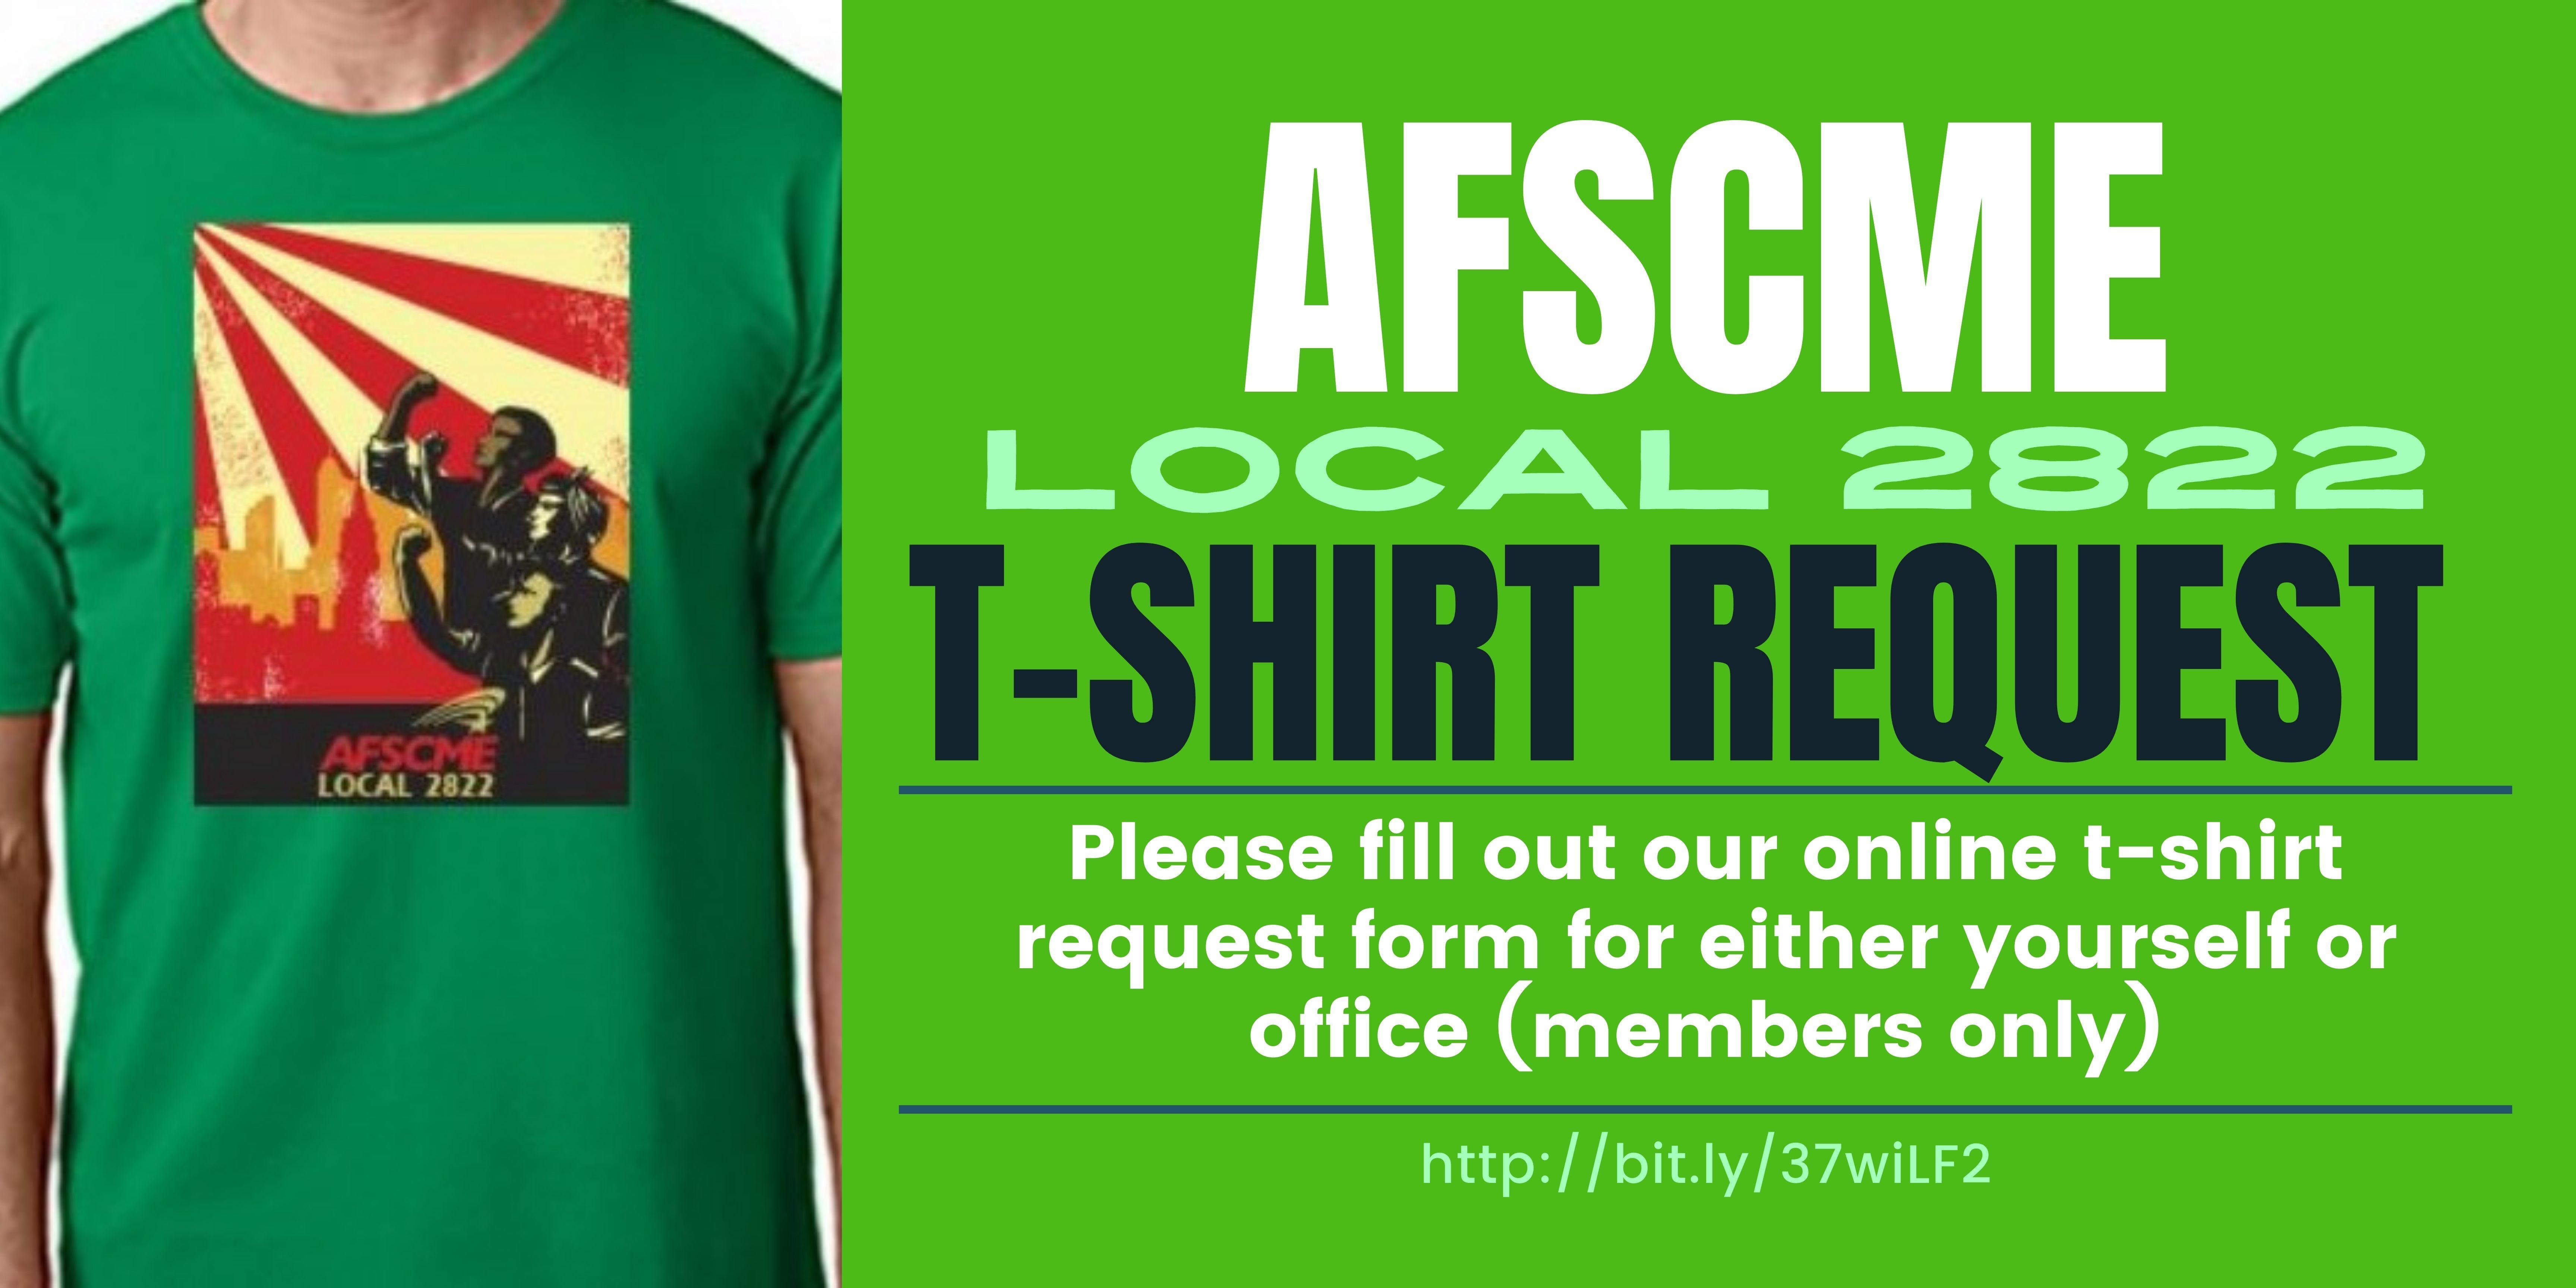 Link to Union shirt request